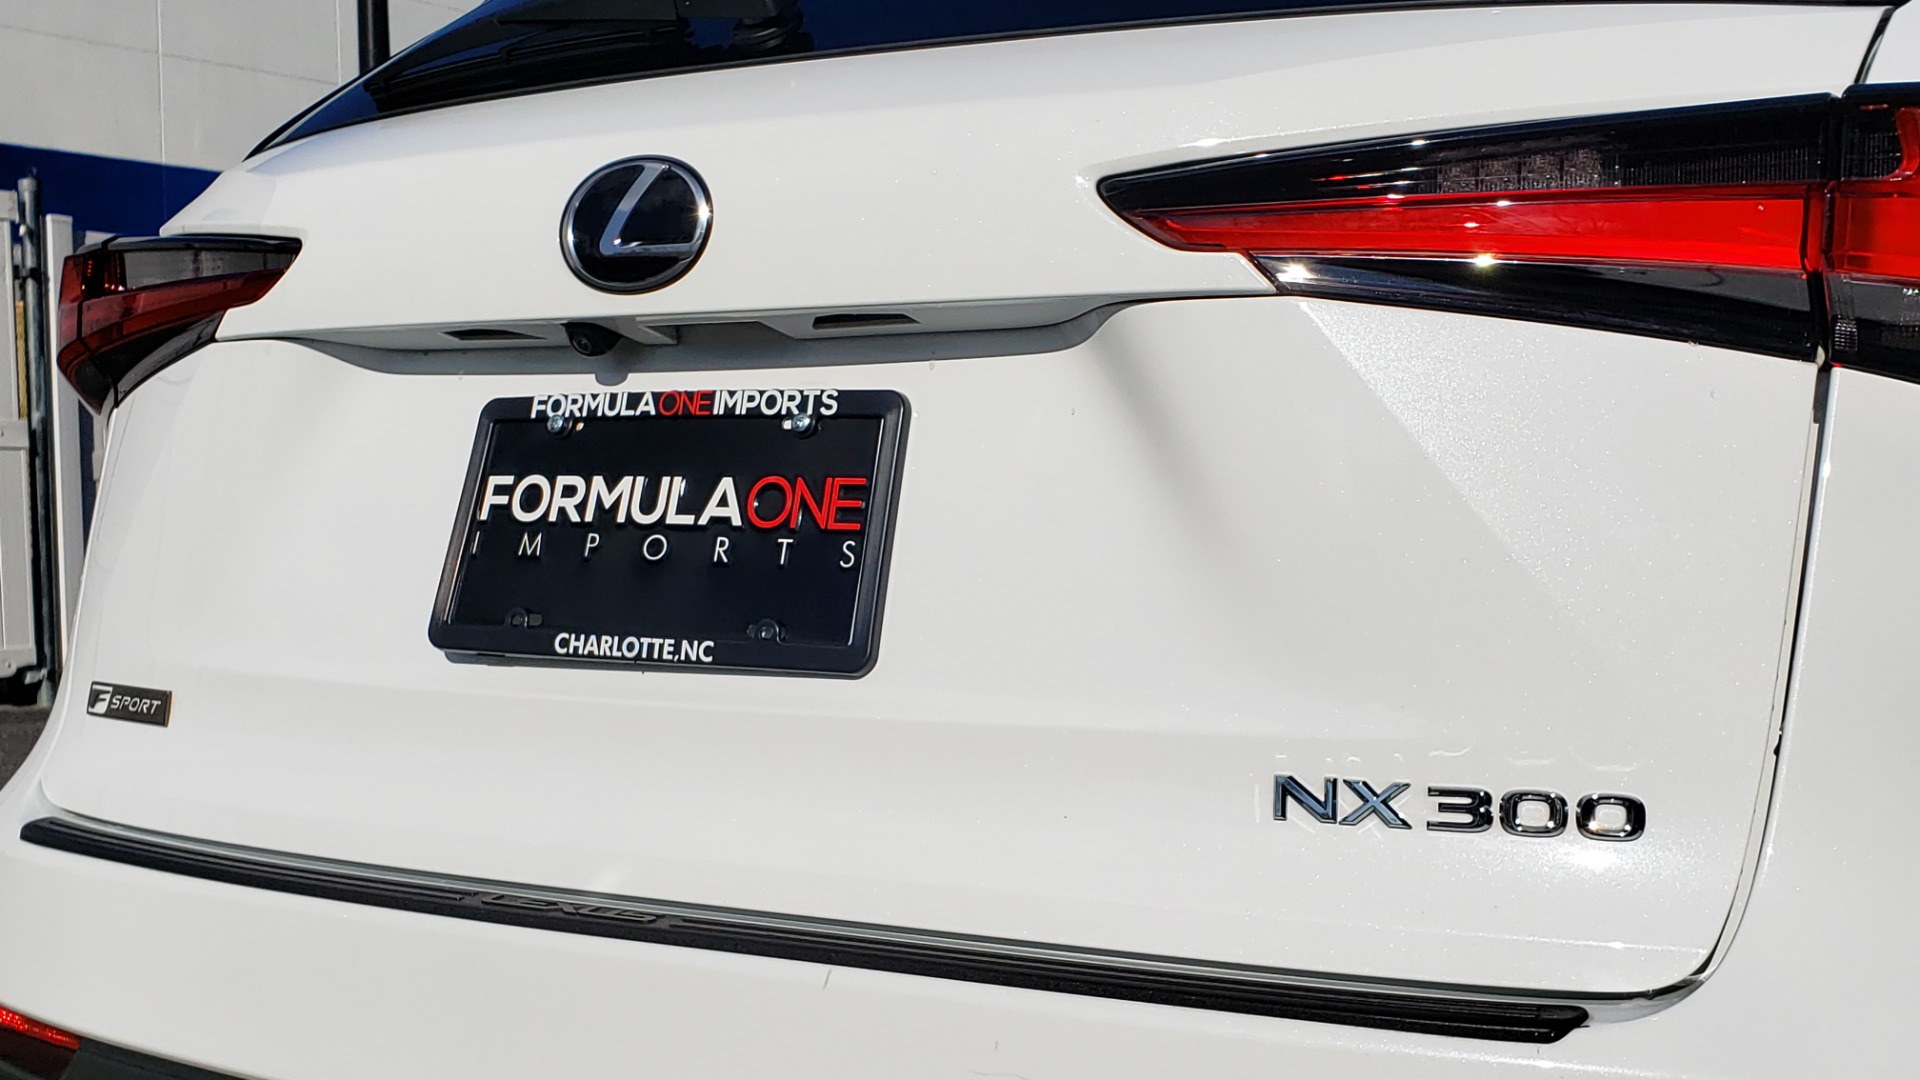 Used 2019 Lexus NX 300 F-SPORT / 2.0L TURBO / LEATHER / 18IN WHEELS / REARVIEW for sale Sold at Formula Imports in Charlotte NC 28227 34